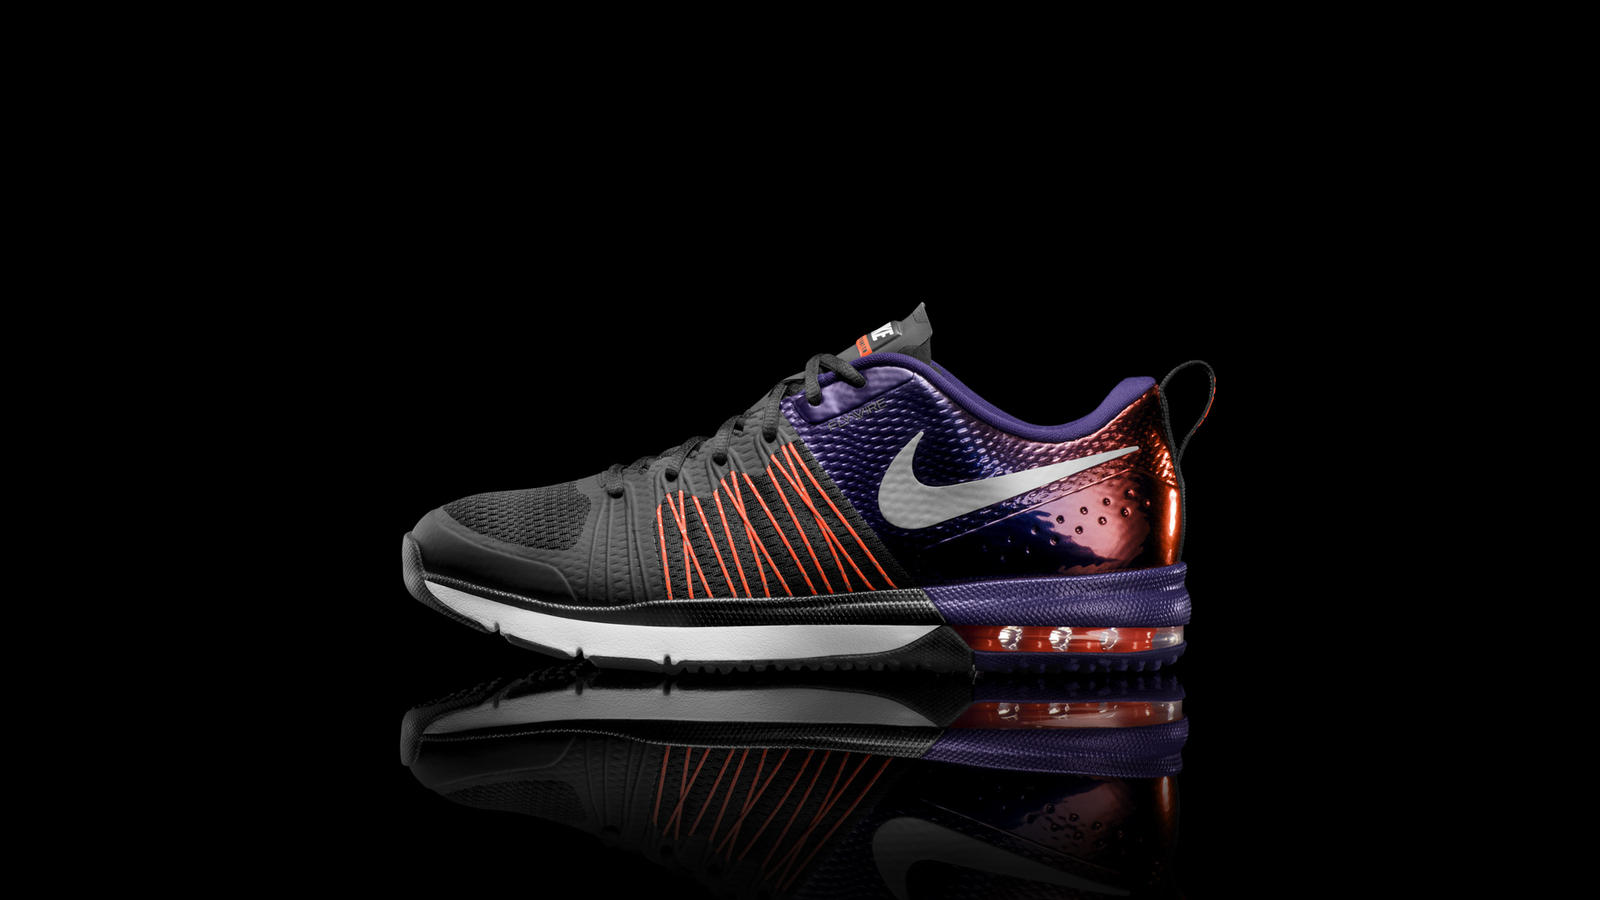 NFL NIKE SUPER BOWL XLIX COLLECTION UNVEILED - Nike News